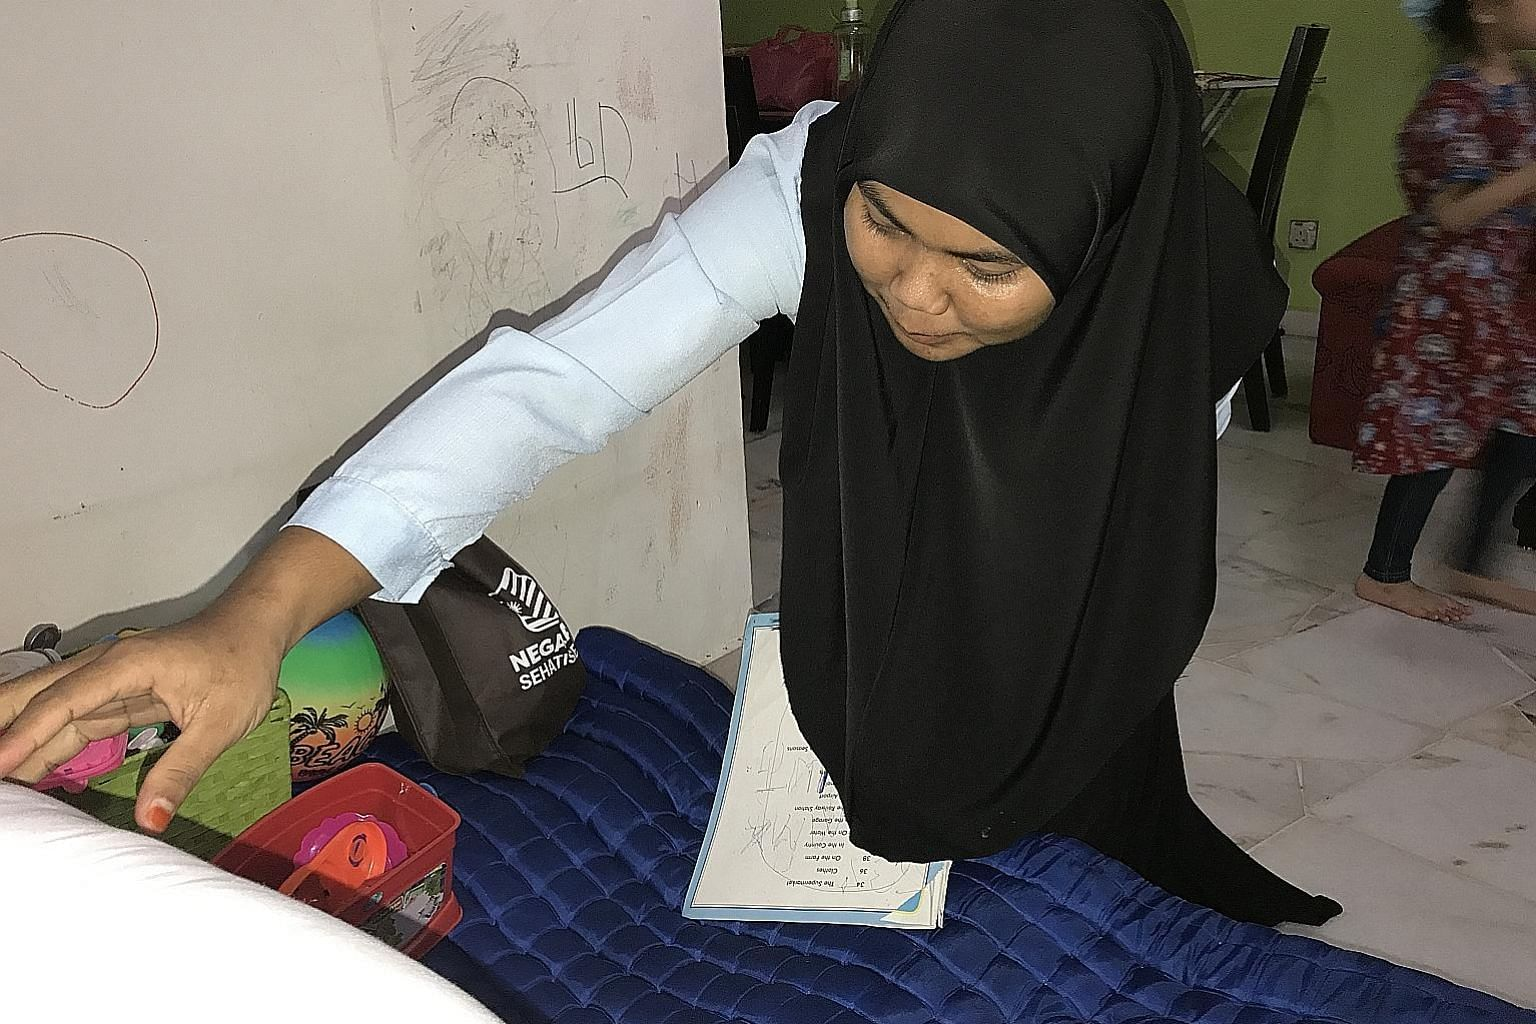 Ever since she started work two months ago, Ms Nor Asma has formed a strong bond with her employer's kids, especially Ahmad Willdan Arjuna Ahmad Fedtri, three. Ms Nor Asma Arifin, who was initially apprehensive about living with strangers, has adjust